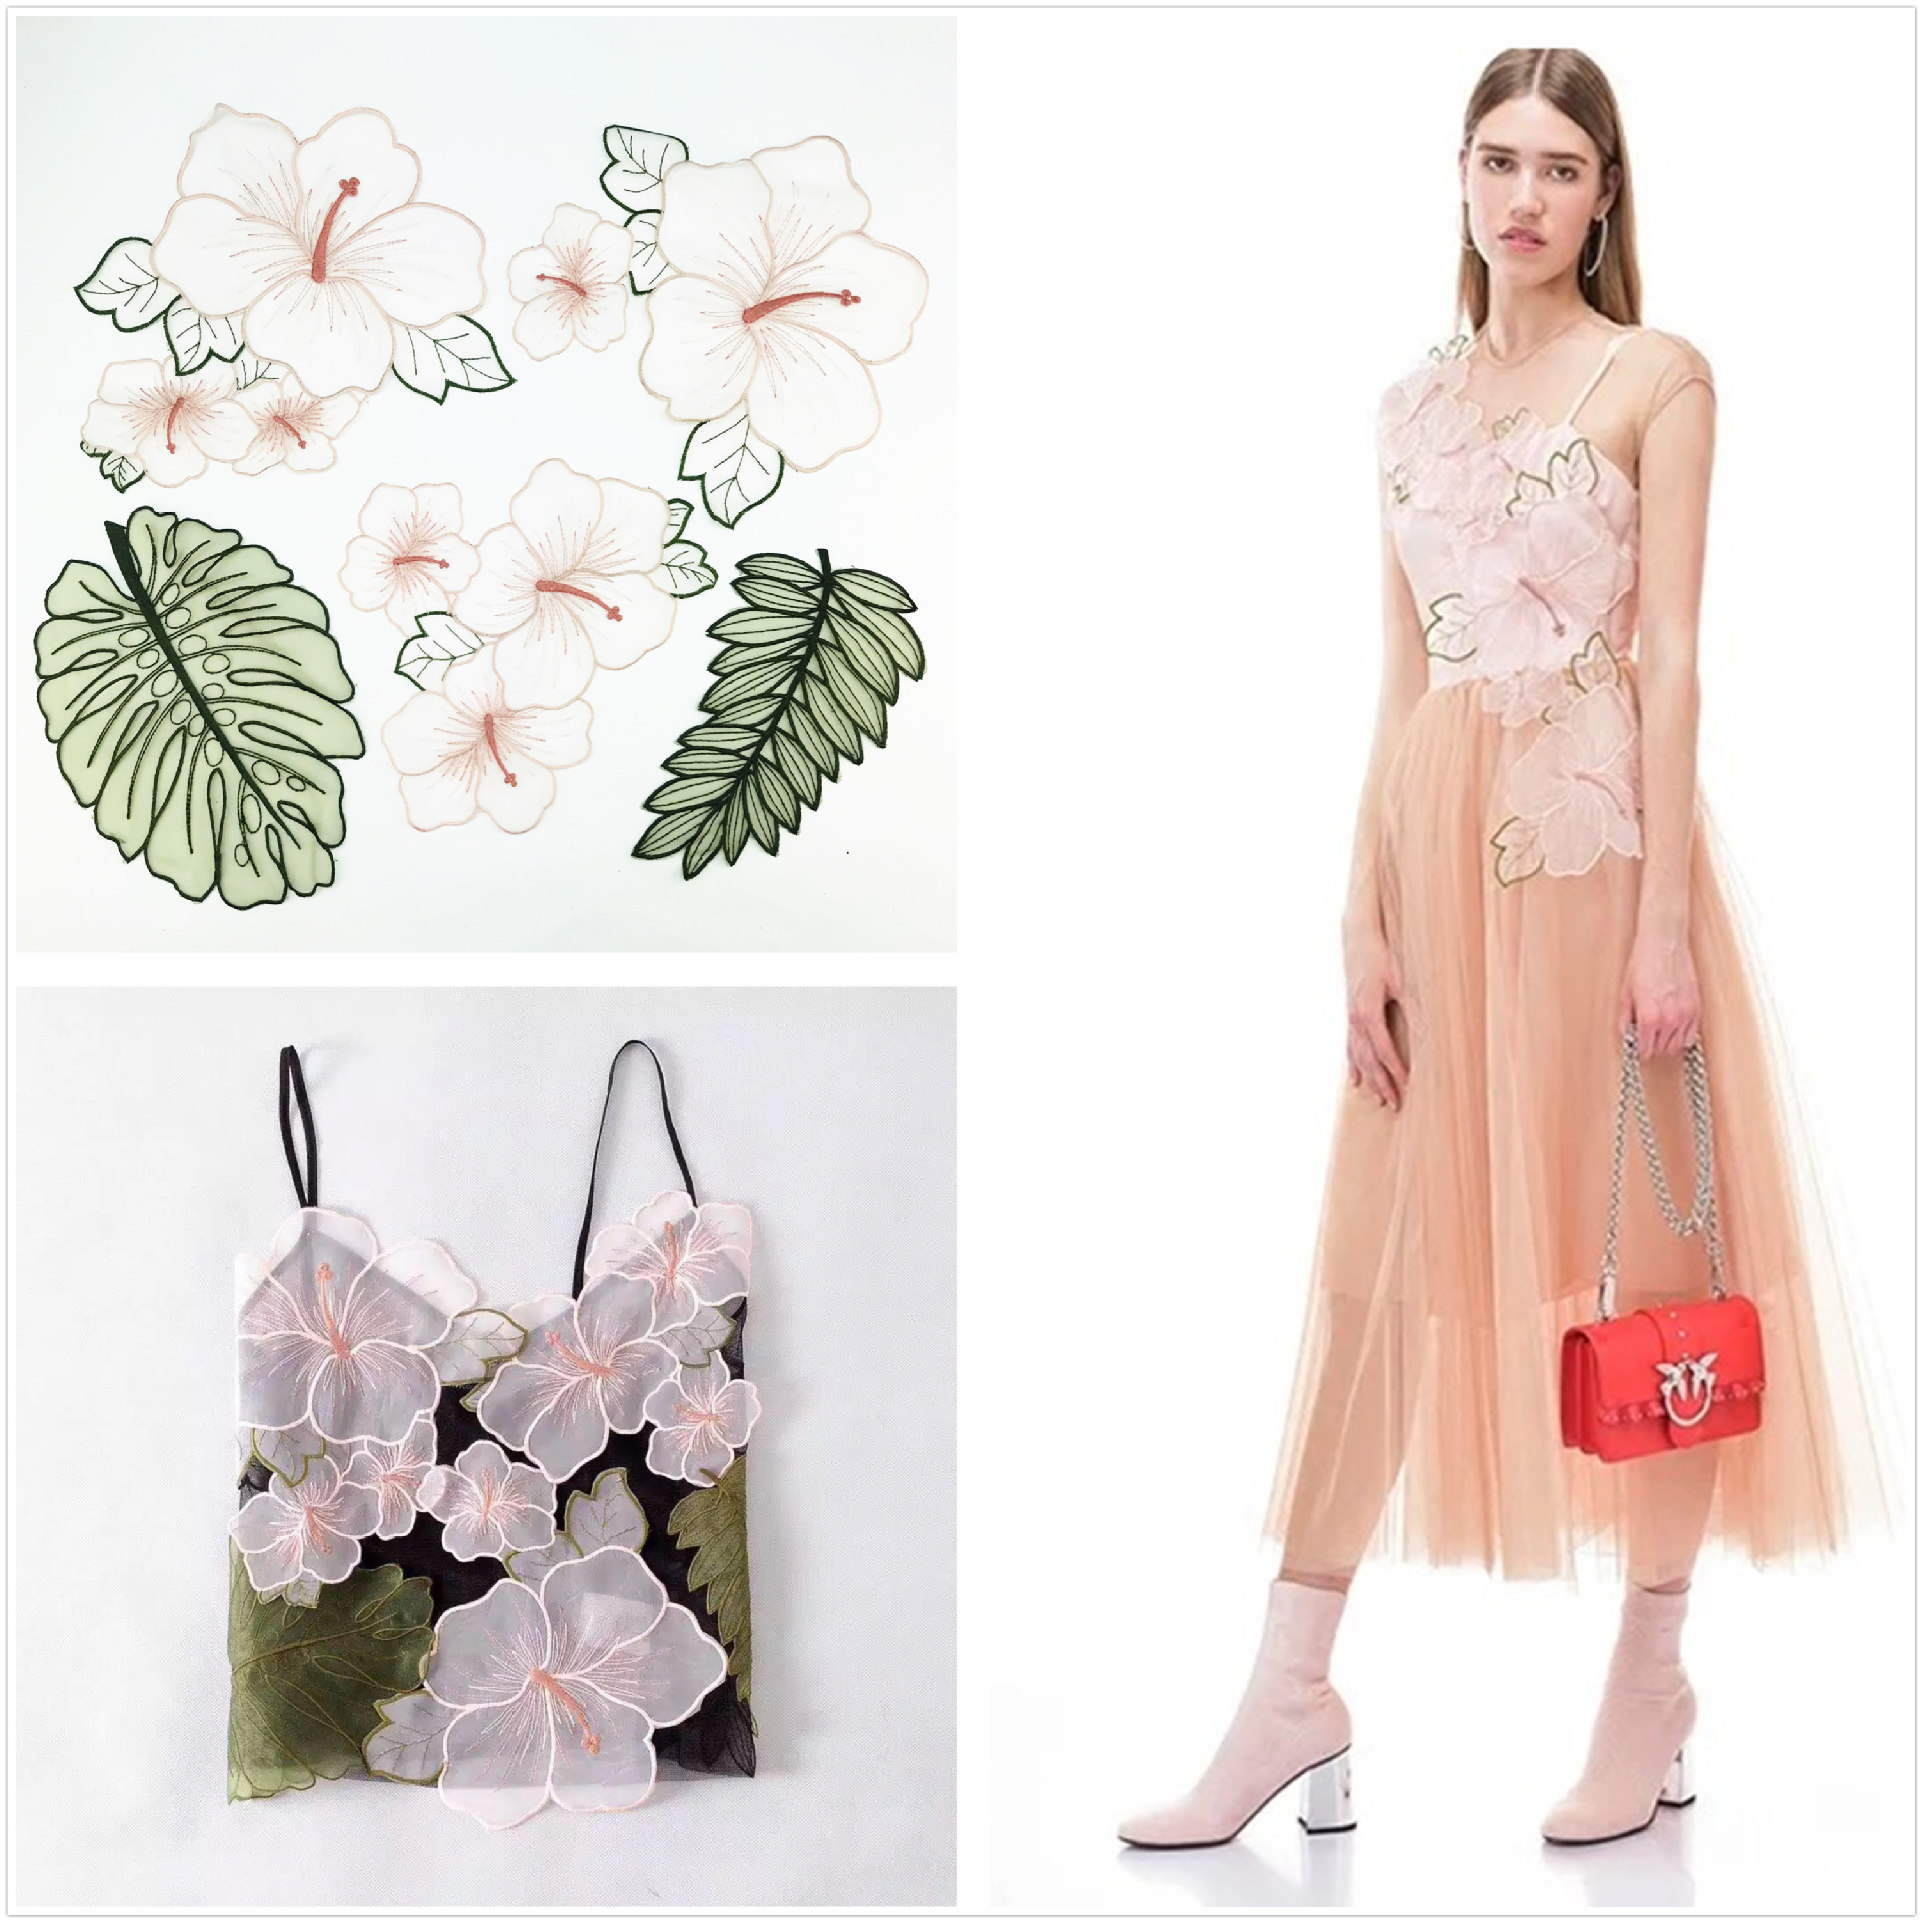 2009 Explosion Lace Transparent Mesh Embroidery Cloth Sticker Eugene Yarn Diy Decorative Patch Sticker Clothing Sticker